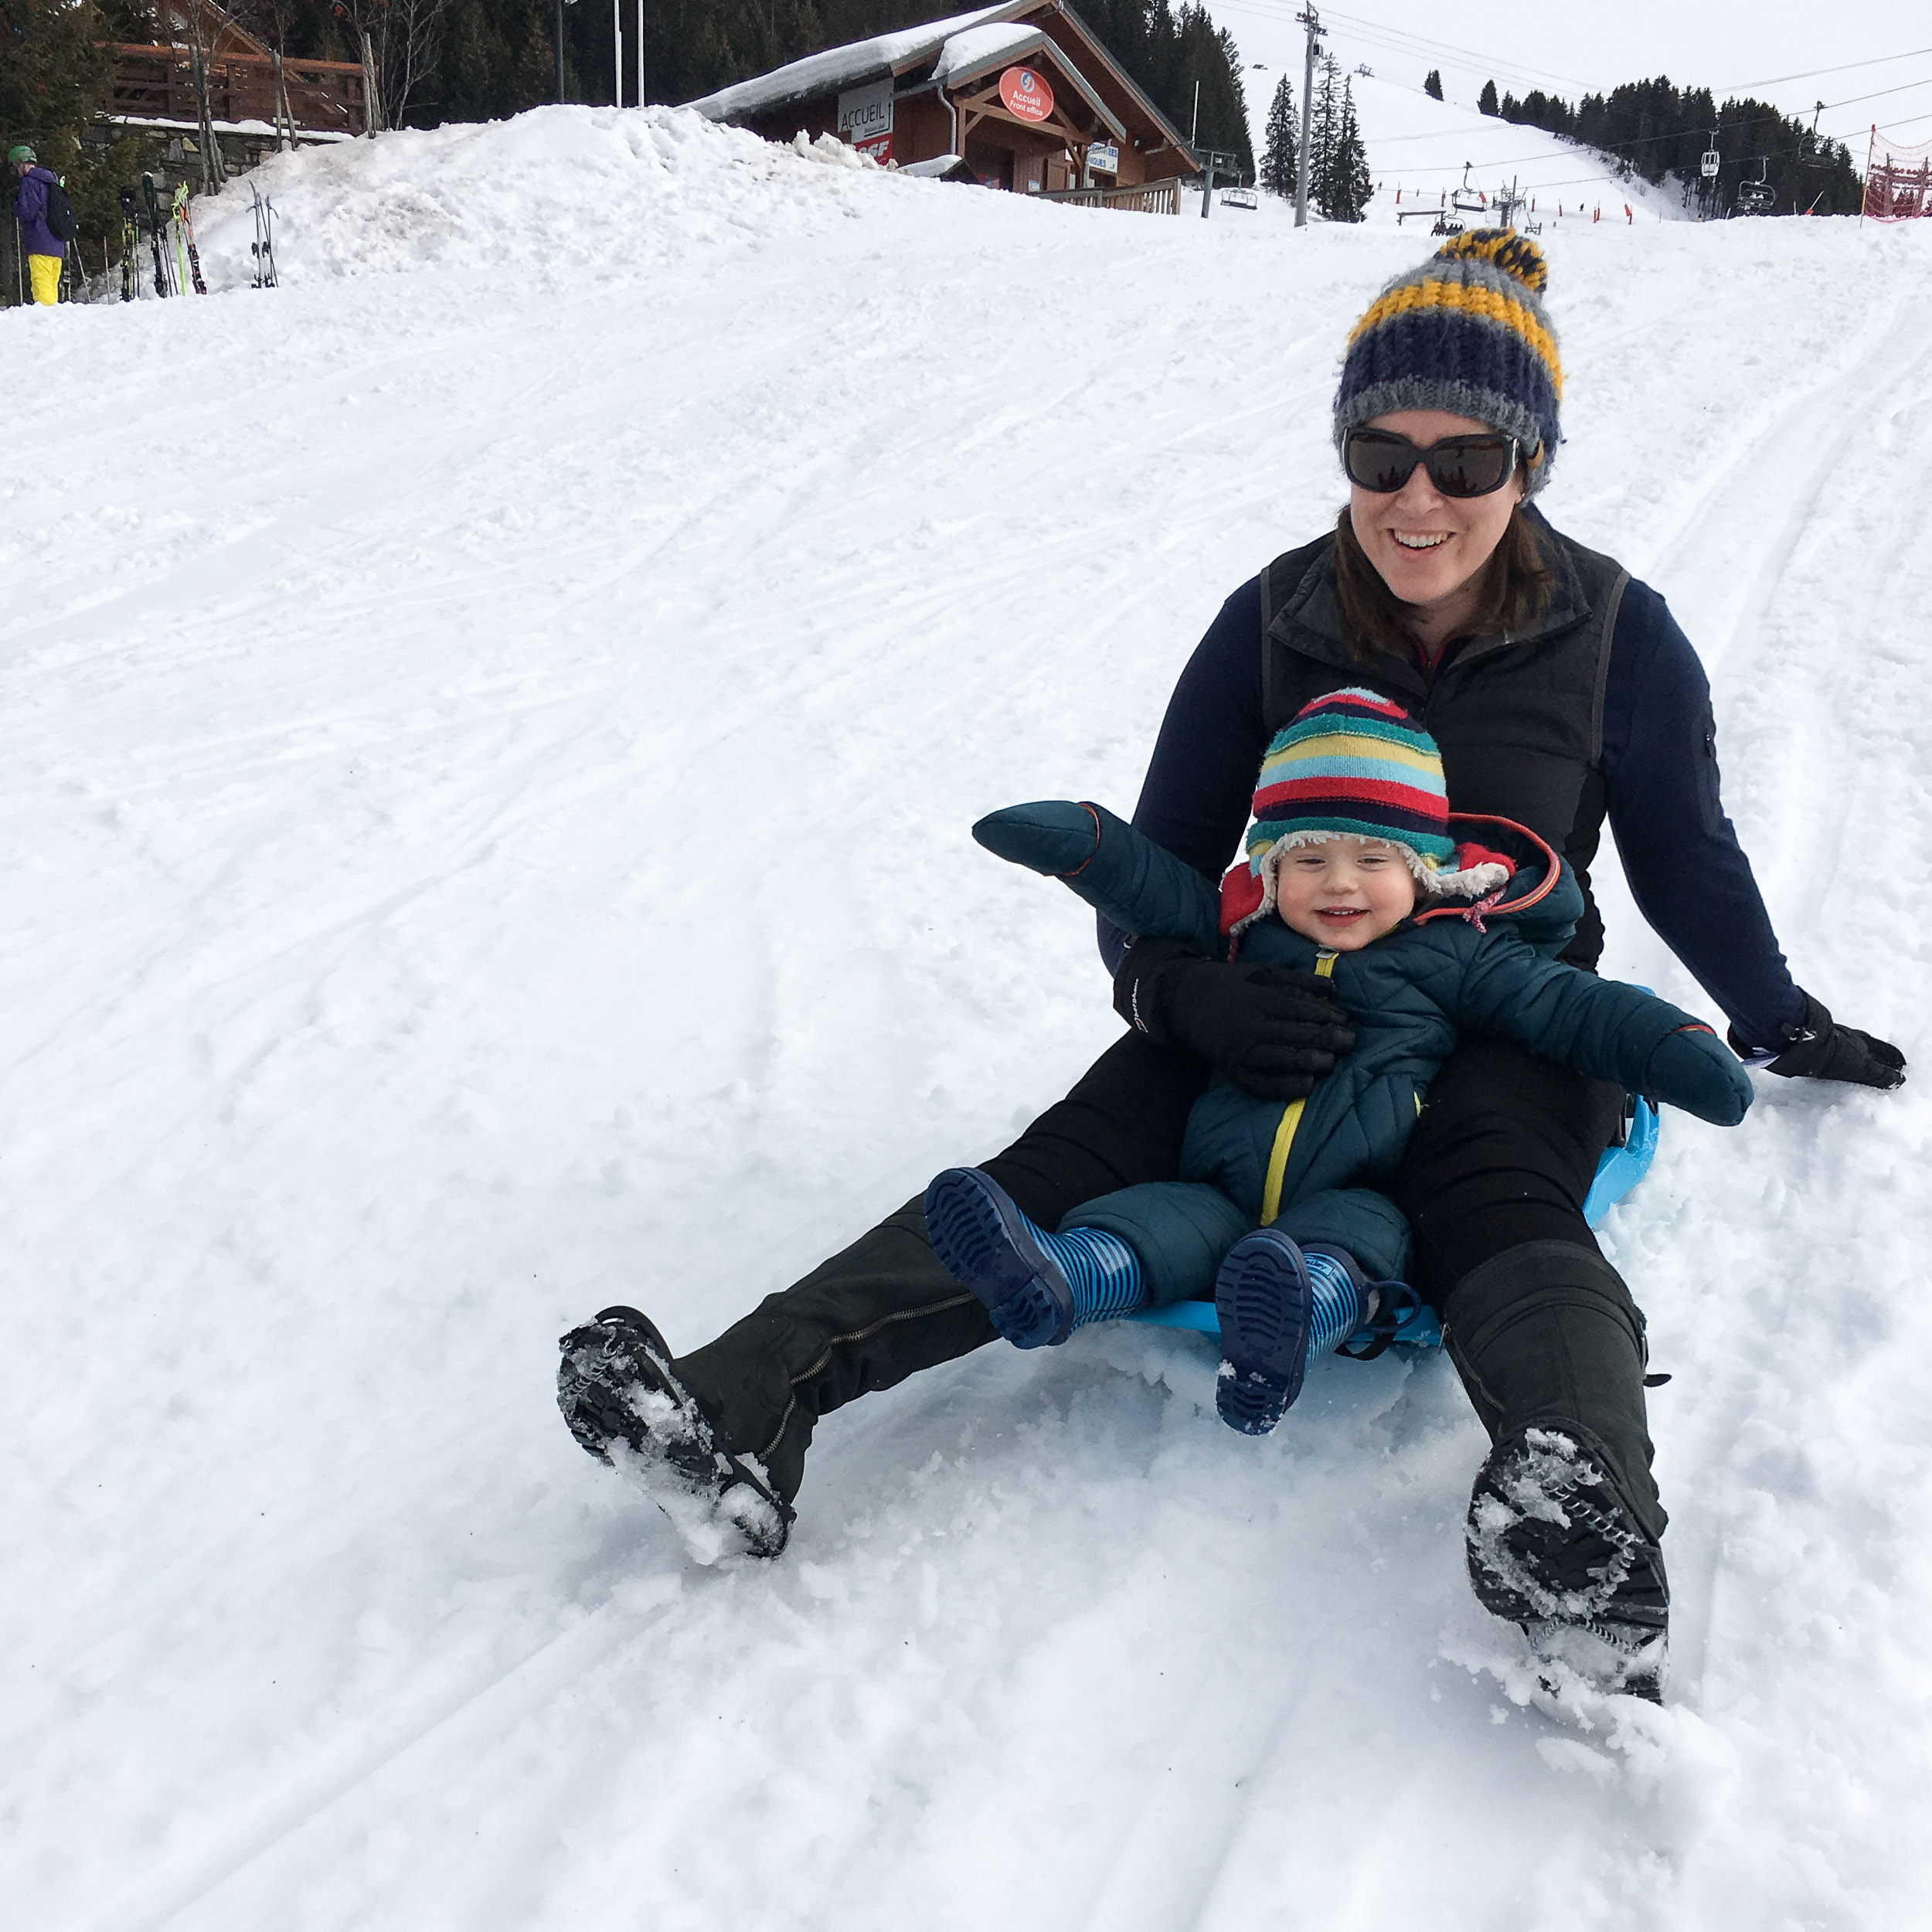 Woman and little boy sledding down a snowy slope